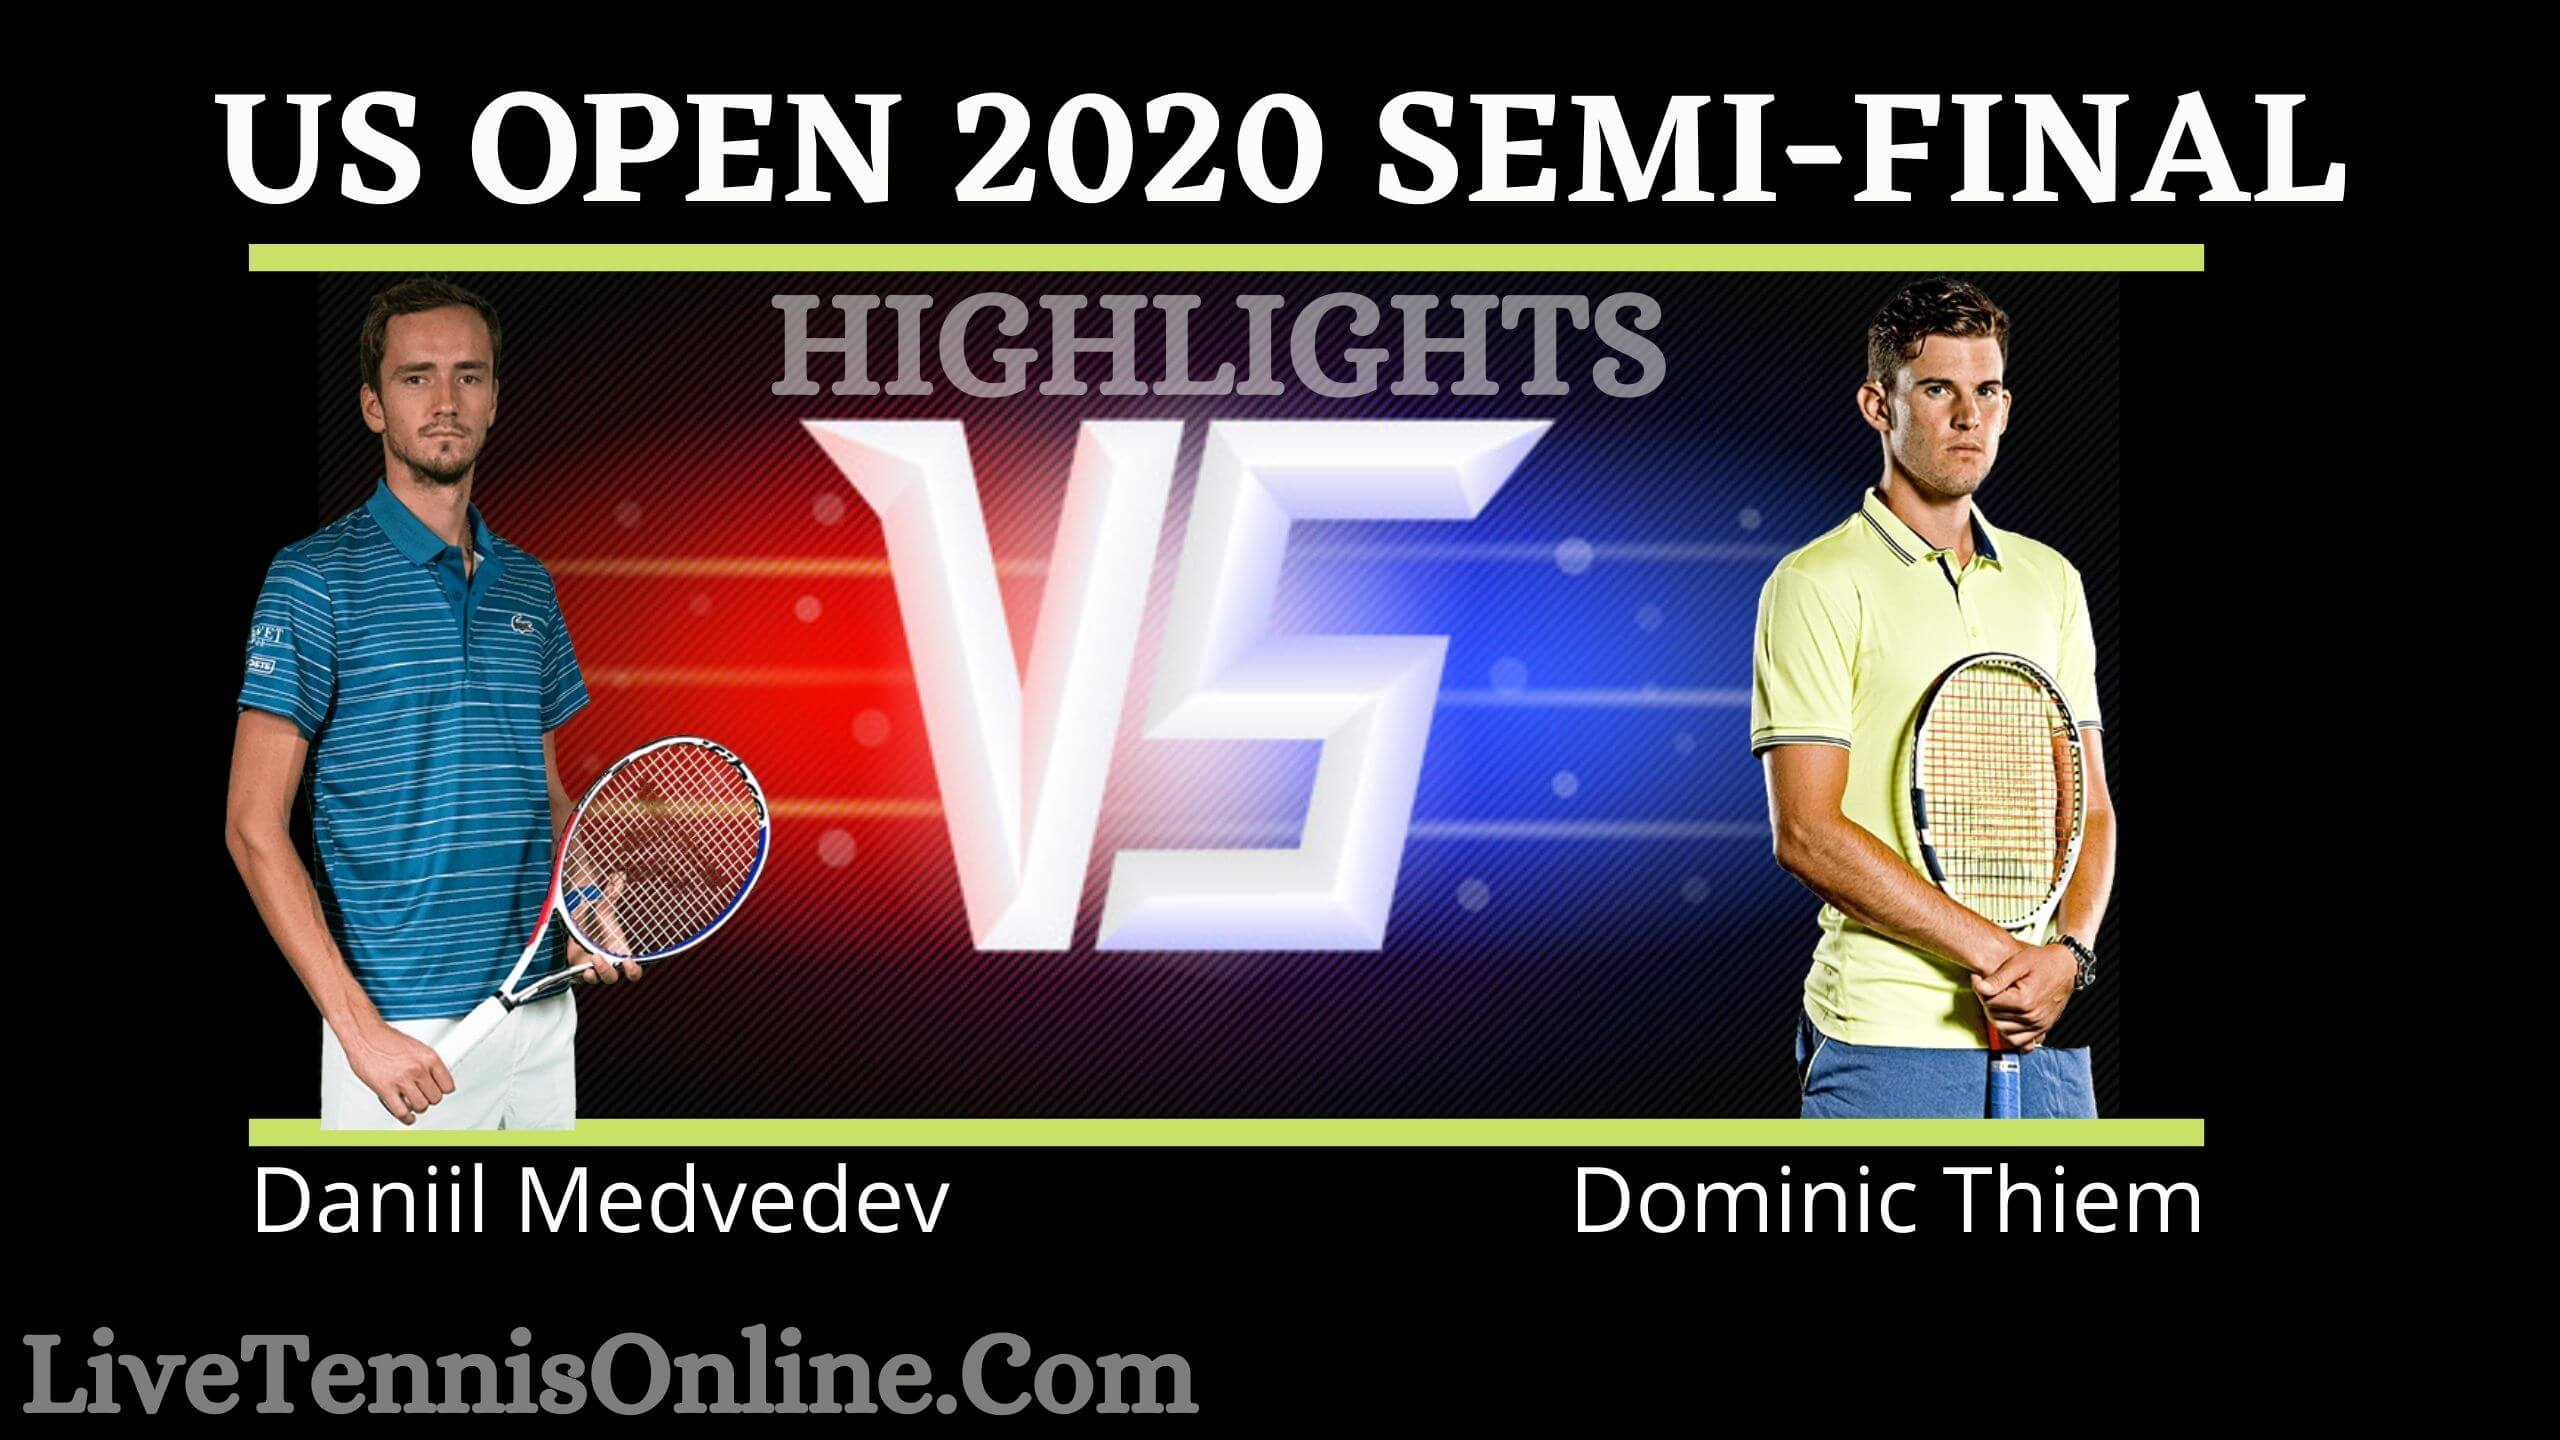 Medvedev Vs Thiem US Open 2020 Semi Final Highlights